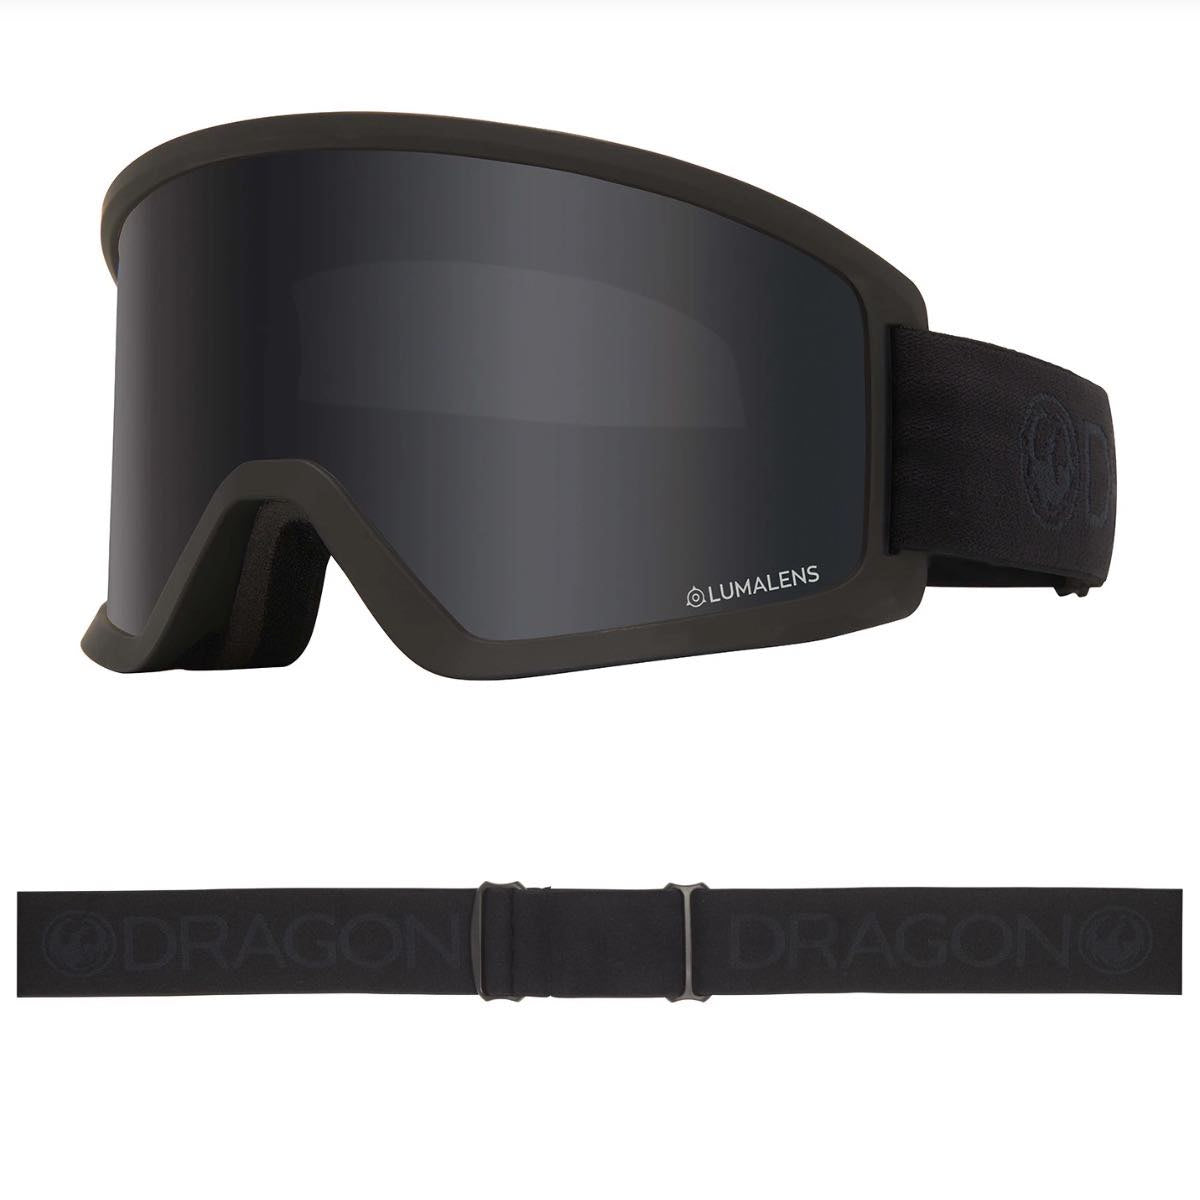 DRAGON DX3 OTG BLACKOUT MED LUMALENS DARK SMOKE LENS - GOGGLES